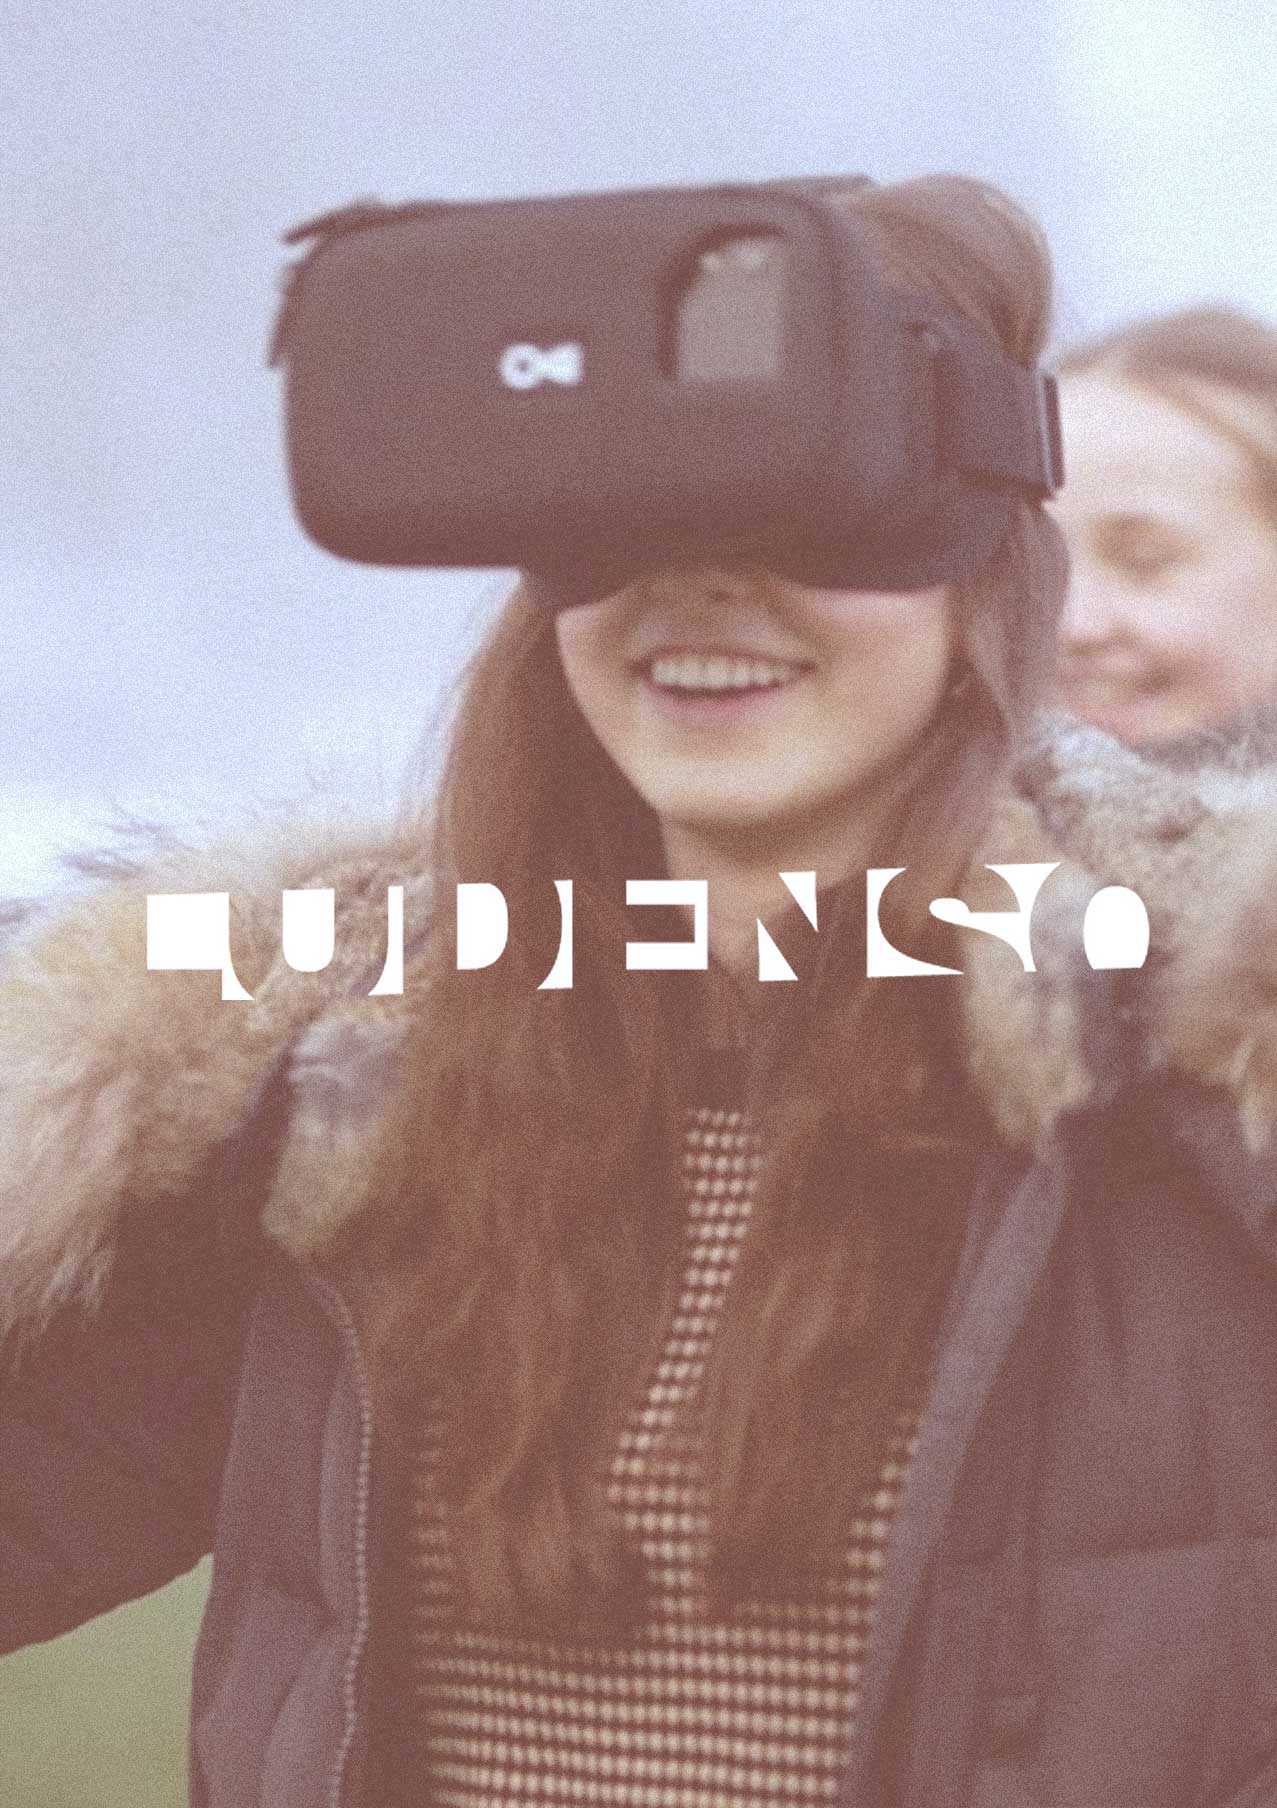 Meet Ludenso: Interview with Co-founder Harald Manheim